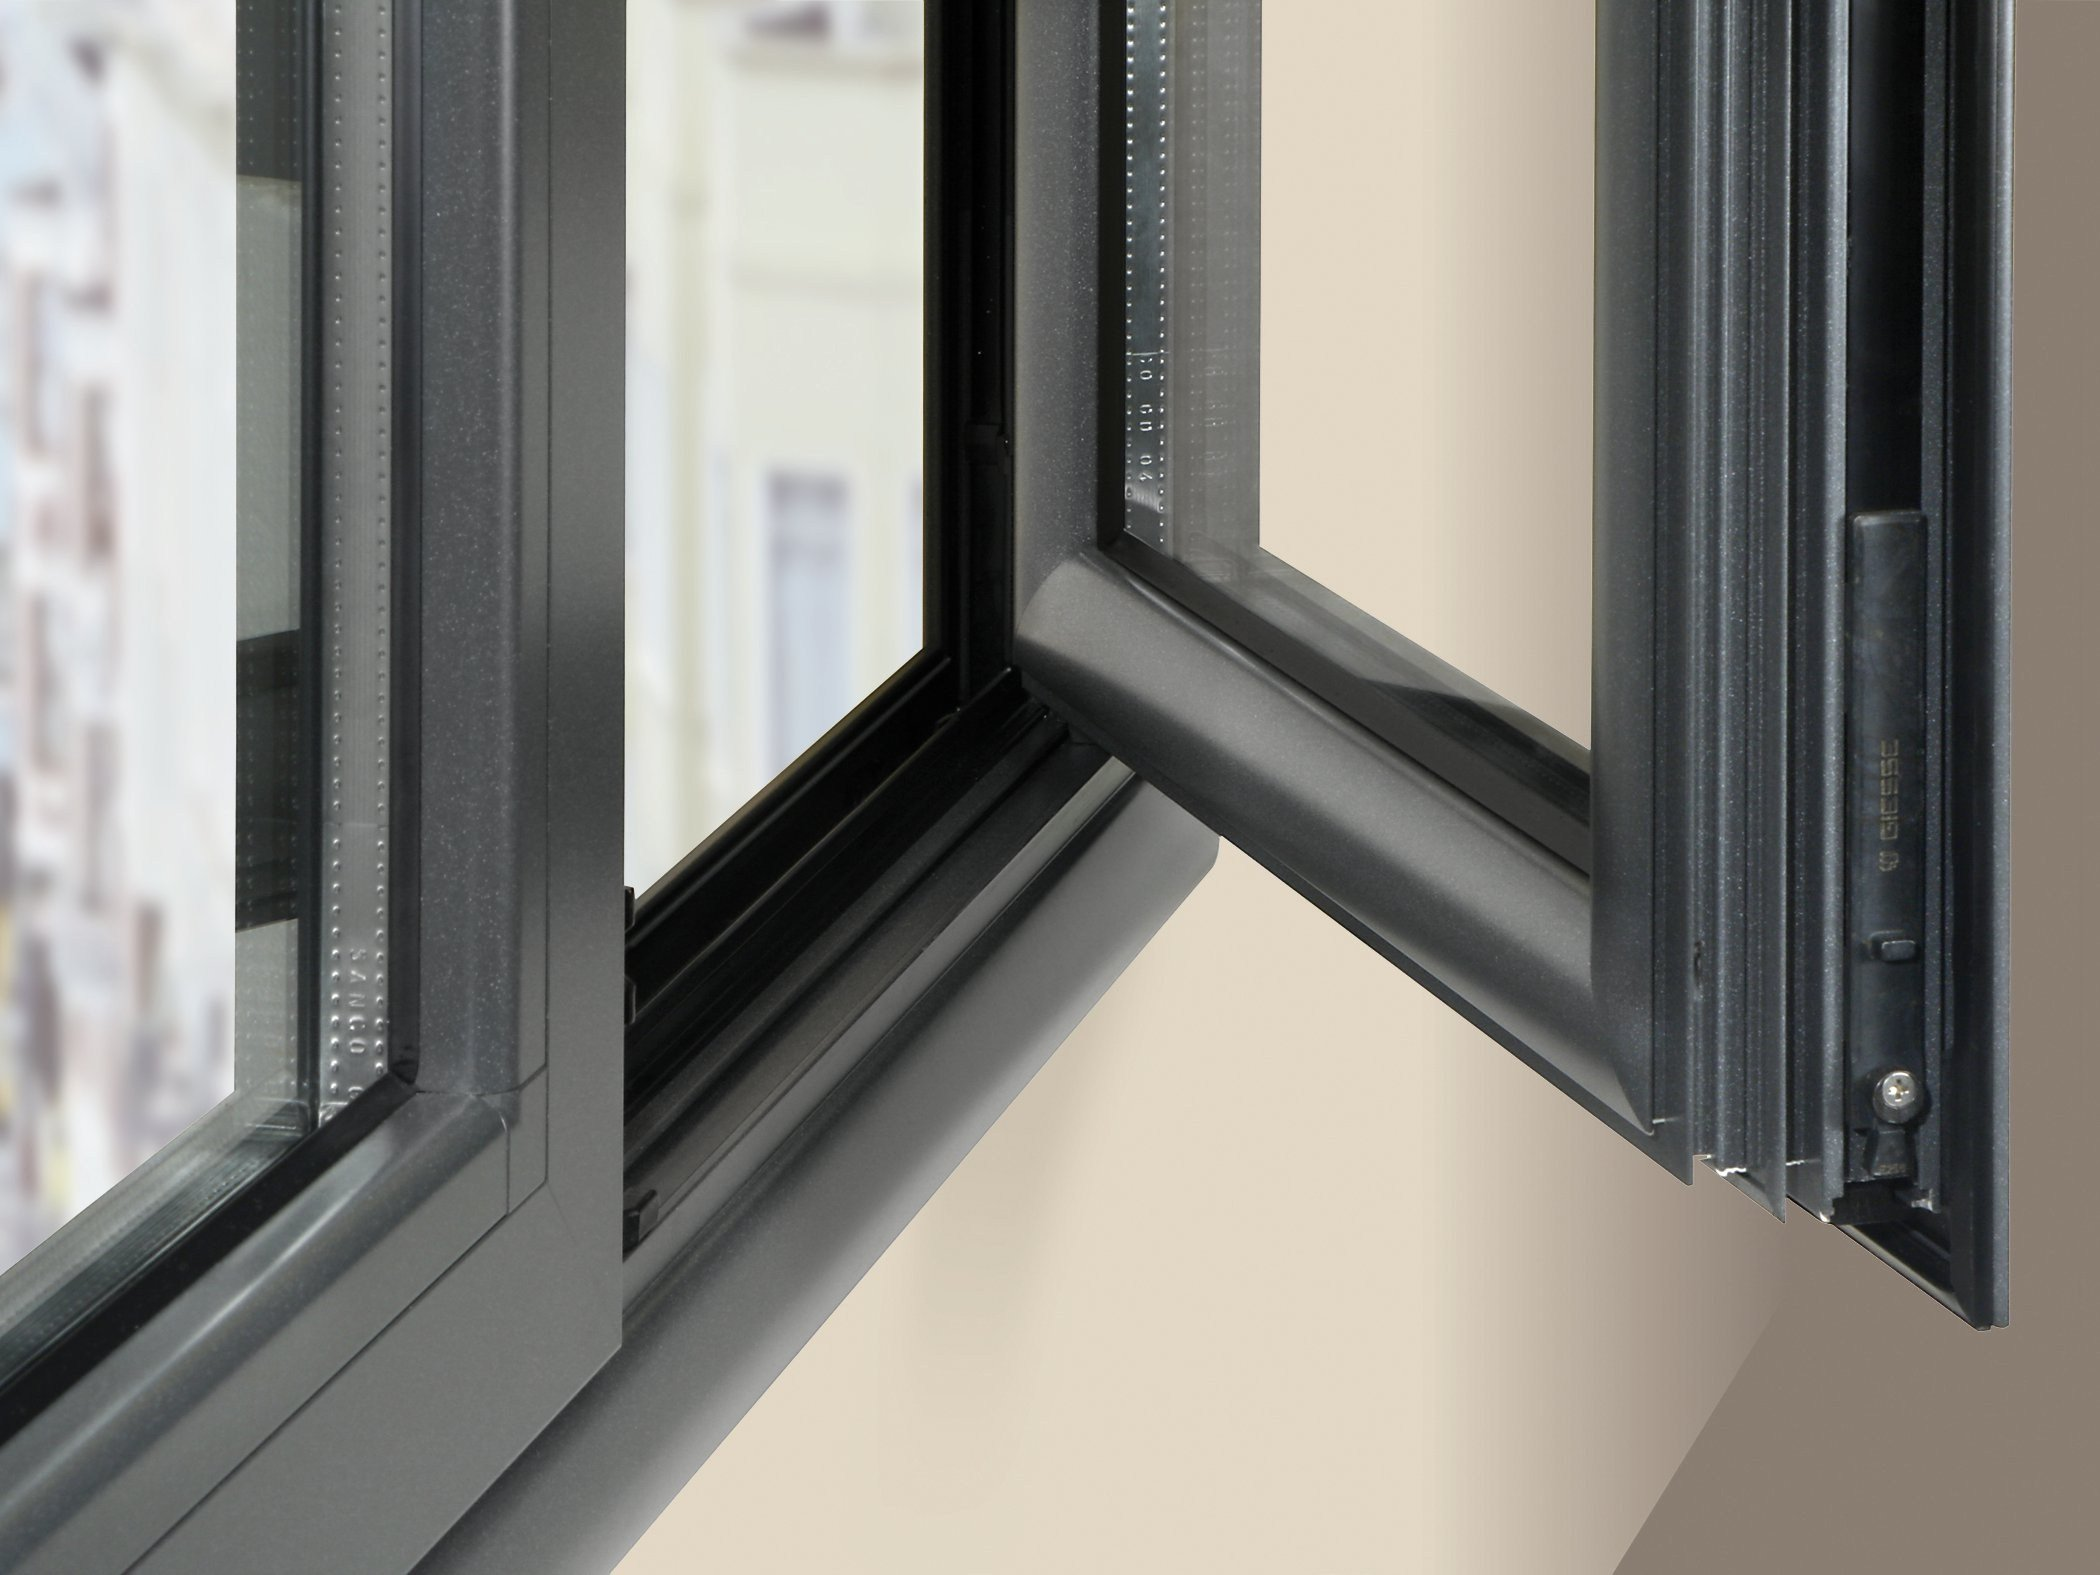 Aluminium thermal break window eku 52 66 tt by profilati for Thermal windows